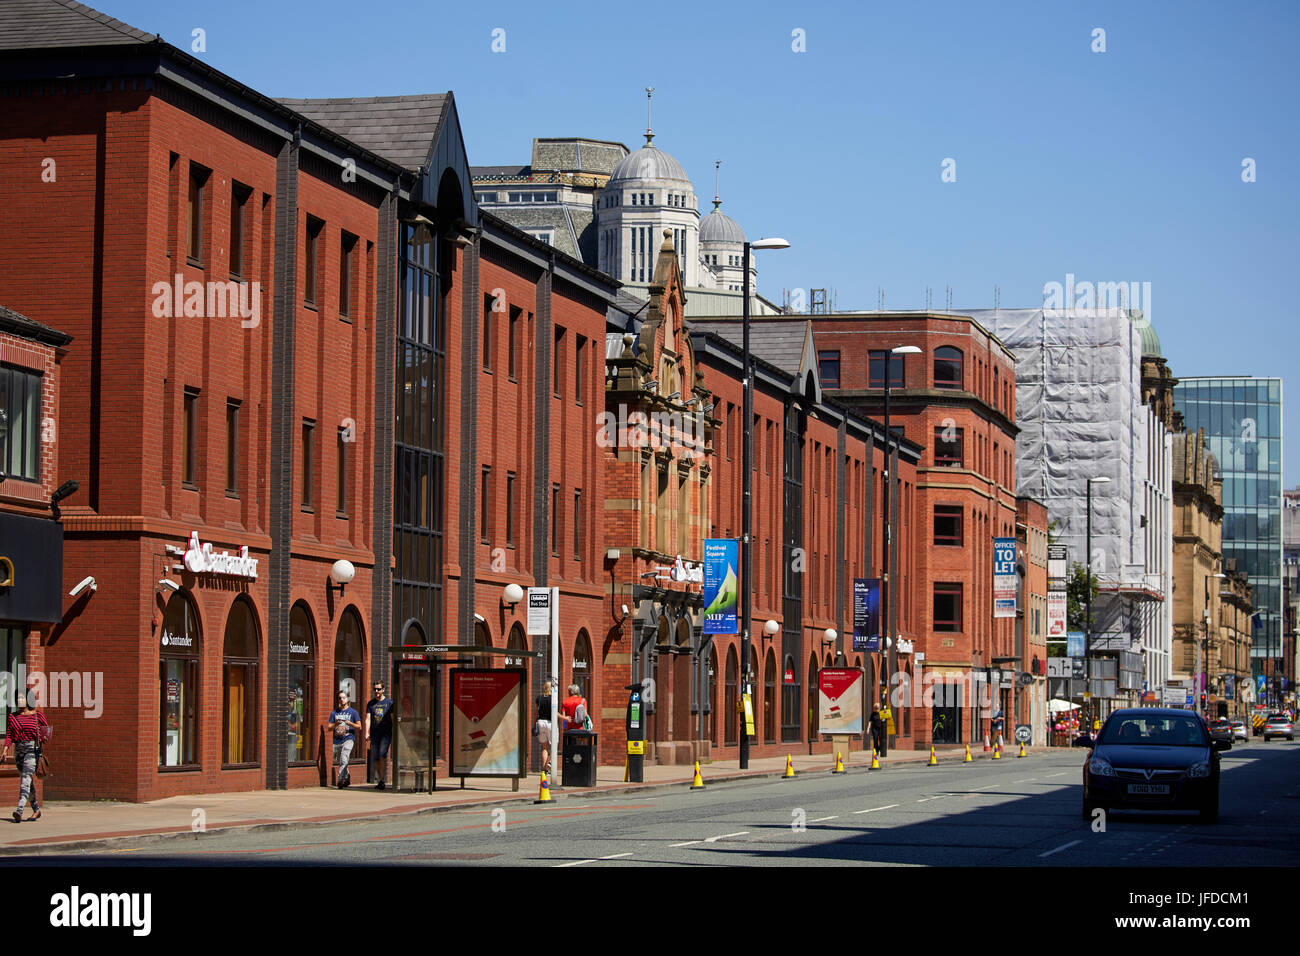 Looking down Deansgate 298 in Manchester city centre,  Santander Corporate Banking buildings. and parking bays suspended. - Stock Image